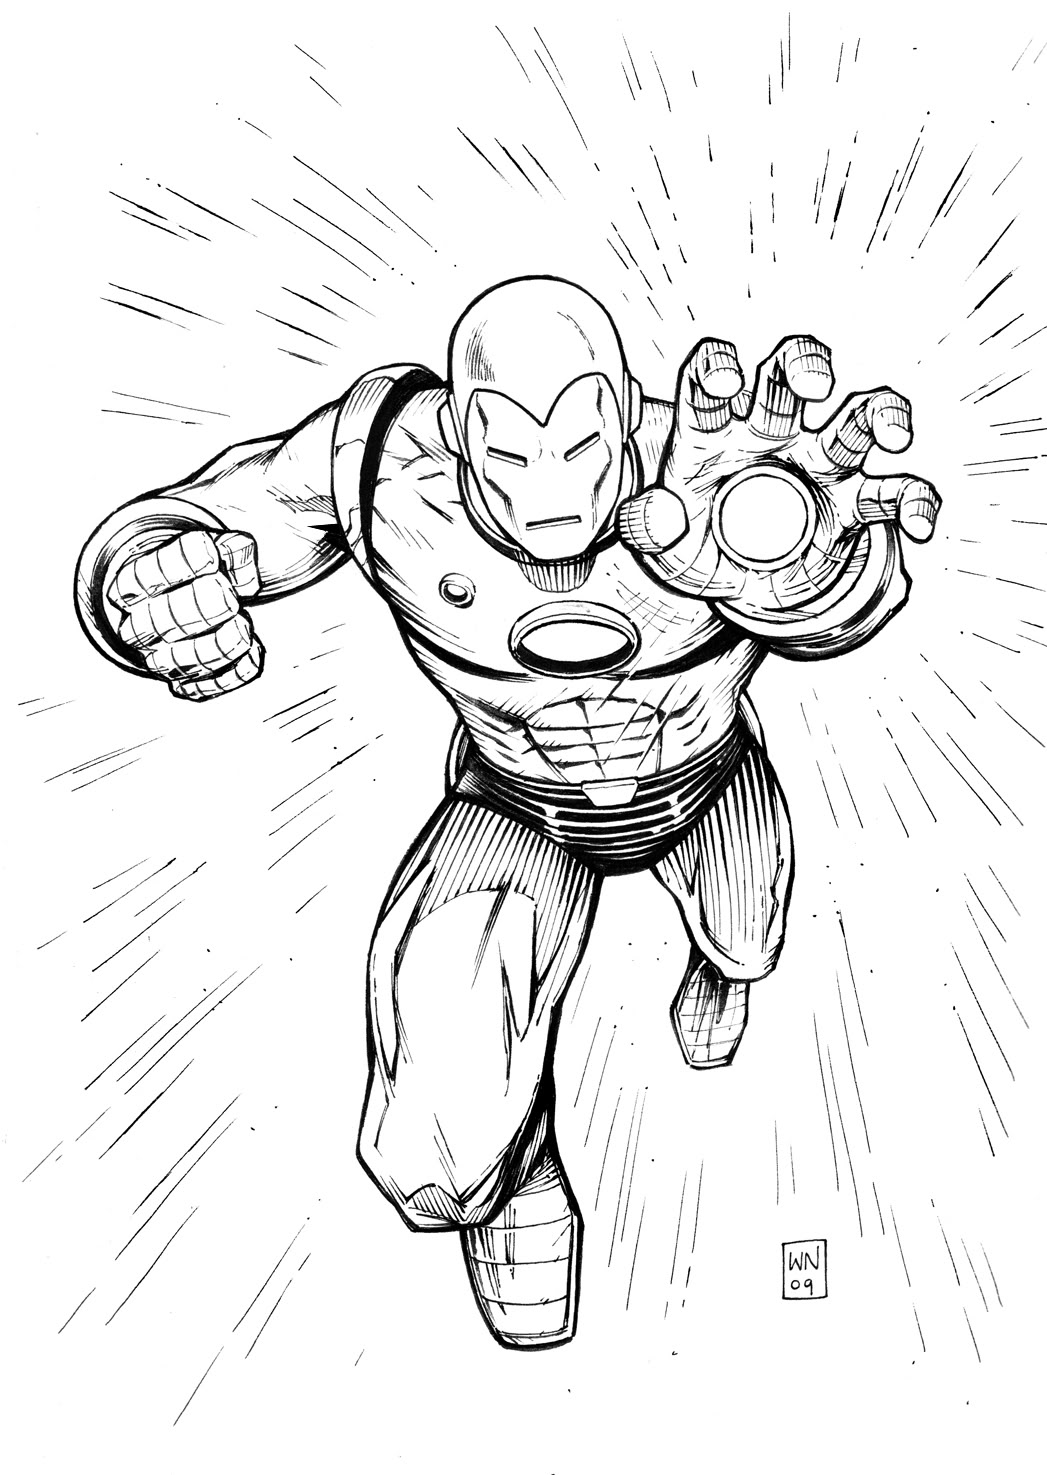 coloring iron man iron man superheroes printable coloring pages coloring iron man